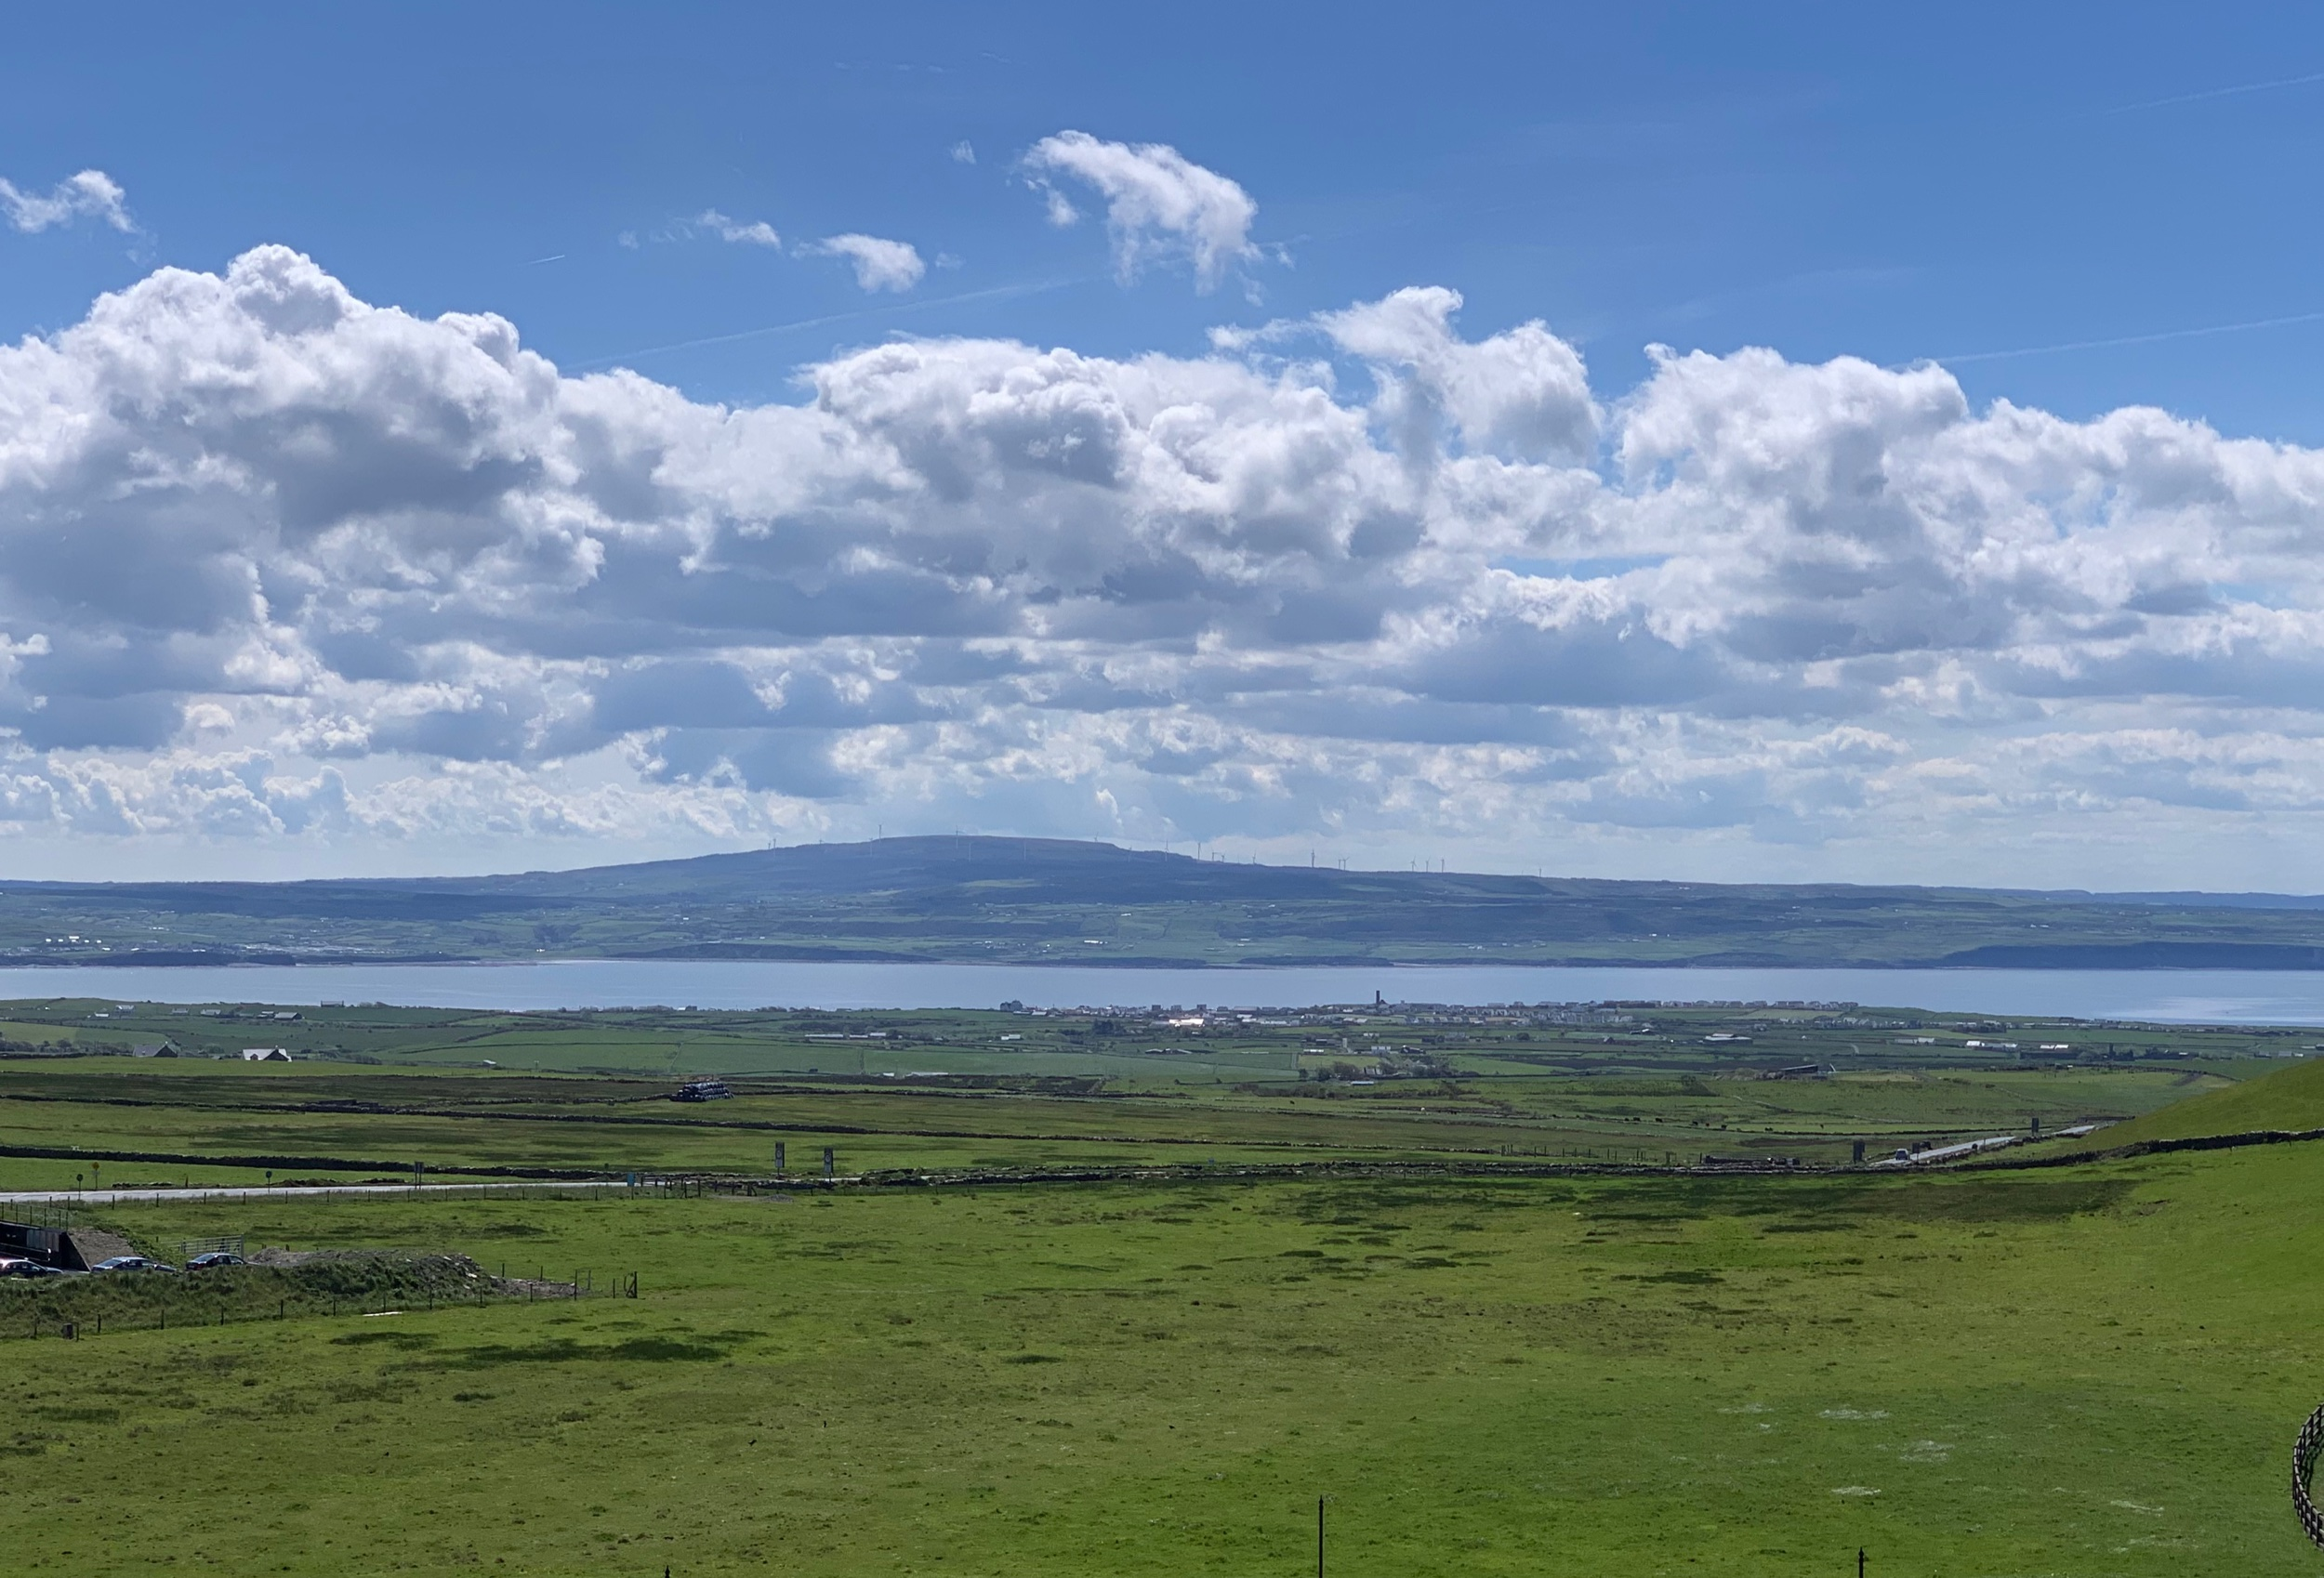 May 28, 2019 - A beautiful evening in Galway Bay, Ireland (planning to watch the sunset at 9:37PM!). No edits.